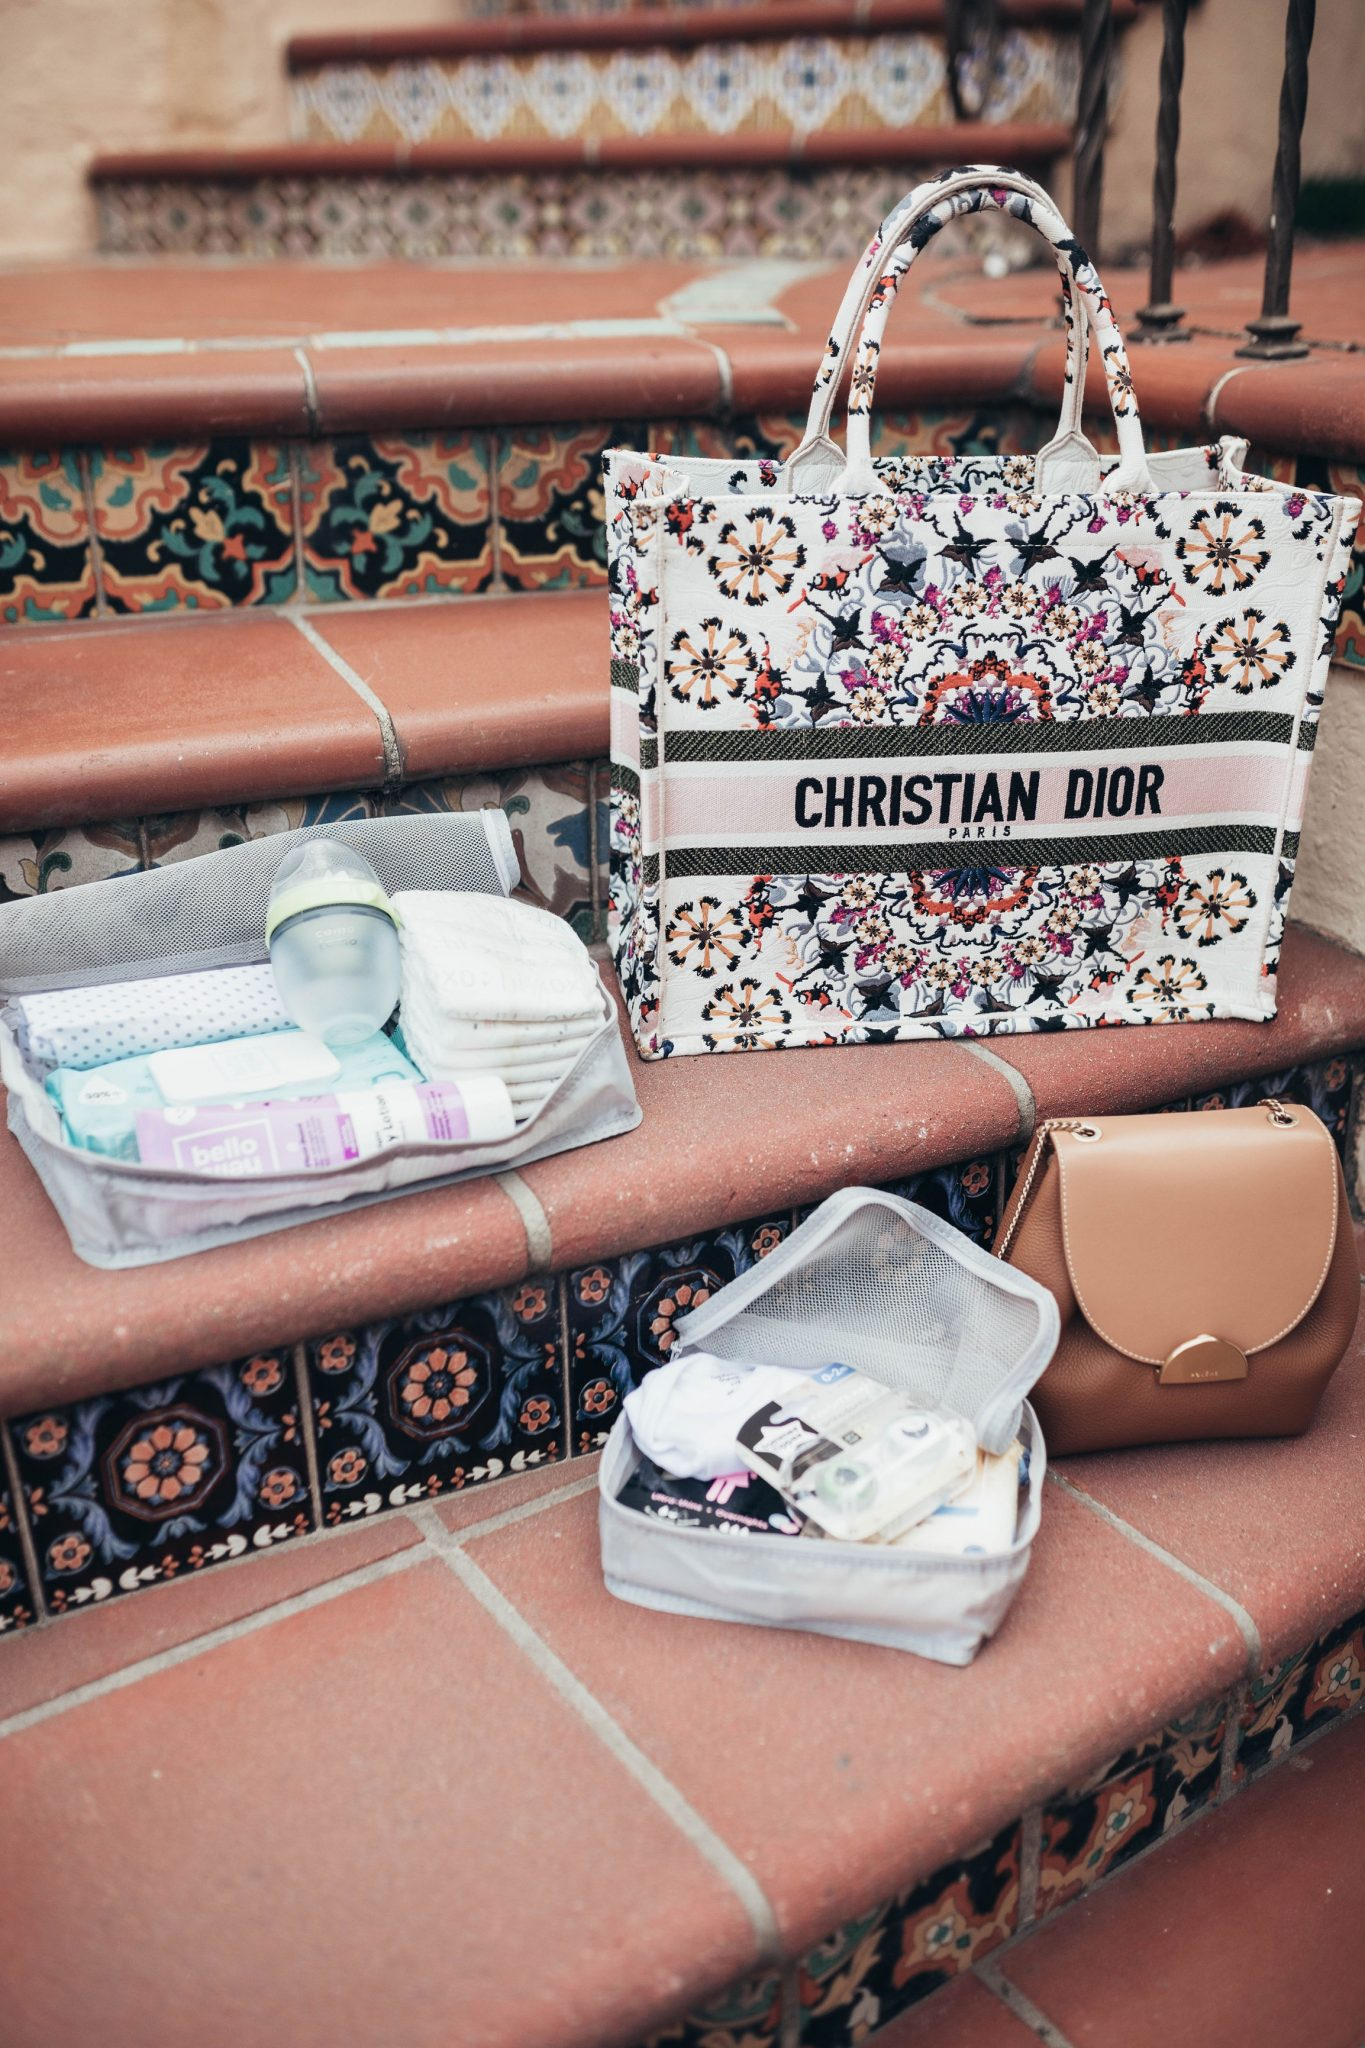 Top Deals On Must-Have Baby Essentials From Walmart by popular San Francisco life and style blog, Just Add Glam: image of a Christian Dior bag and various Walmart baby products on some steps.